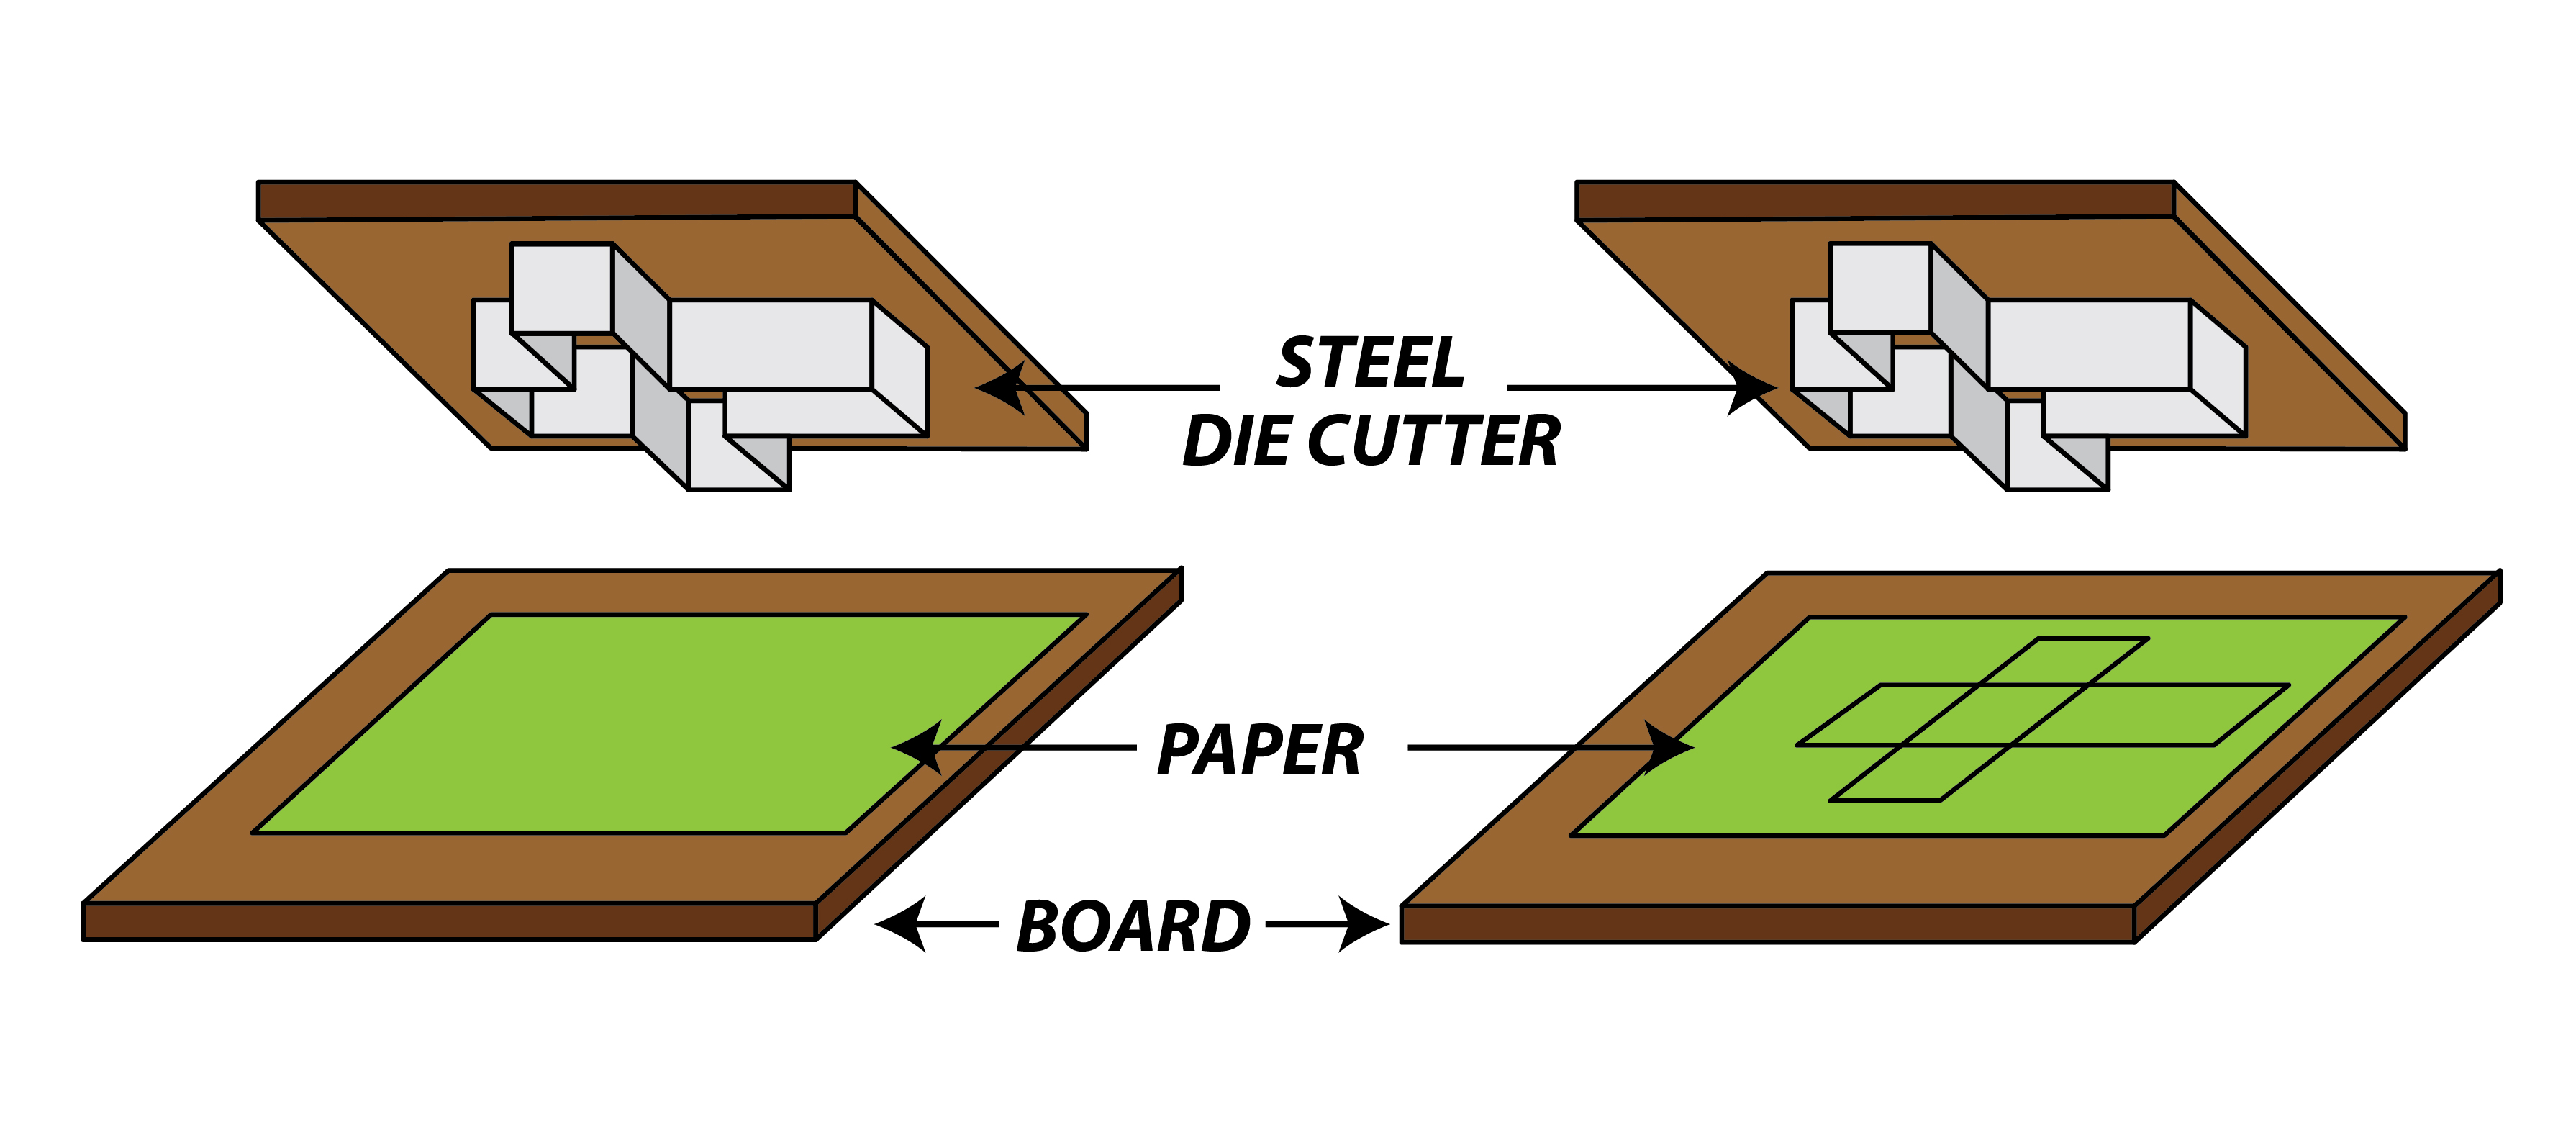 Die_Cutting_V1.jpg